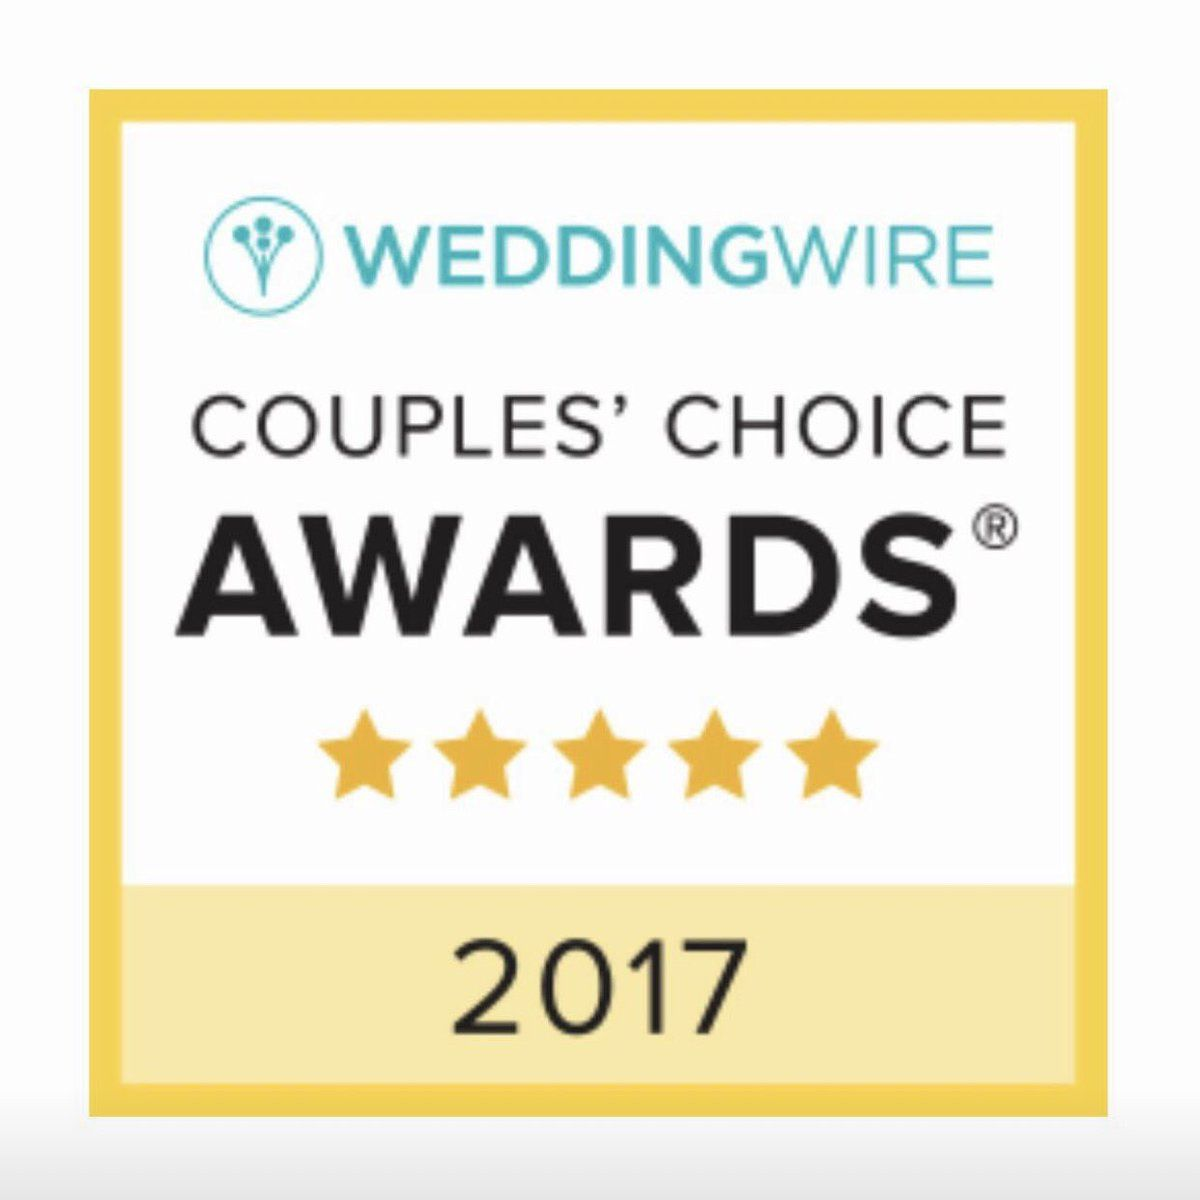 So honored to have won this WeddingWire Couple's Choice Award! THANK YOU!